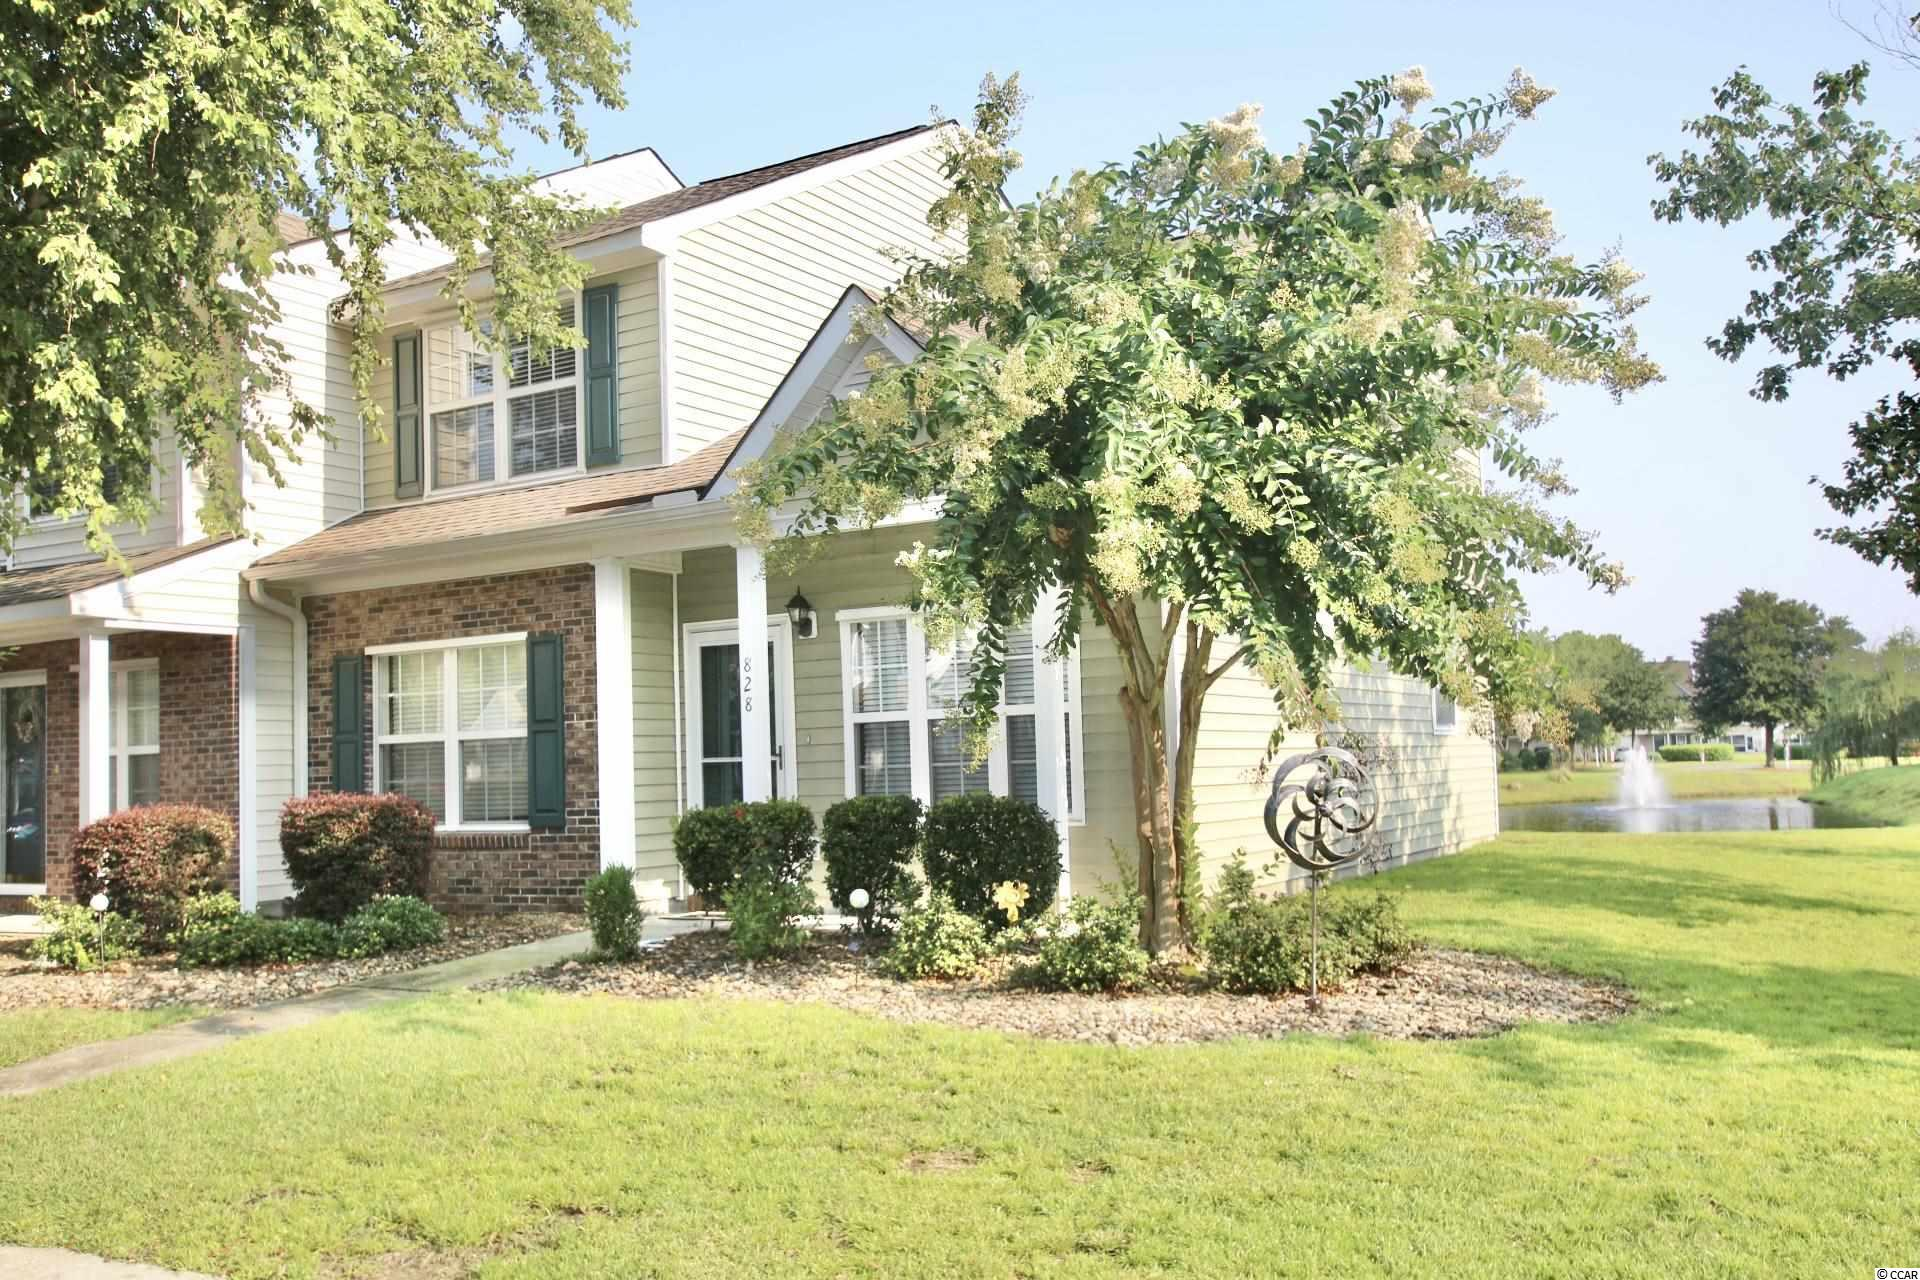 Presenting this welcoming 3 bedroom 2.5 bath townhome located in the Sawgrass East complex in the Carolina Forest community. This townhome affords you easy access to the beach and golfing along with all of the other activities and happenings in Myrtle Beach including fun eateries, award winning off-Broadway shows, public fishing piers, and intriguing shopping adventures along the Grand Strand. Conveniently located to your everyday needs, including grocery stores, banks, post offices, medical centers, doctors' offices, and pharmacies. Check out our state of the art 3-D Virtual Tour.